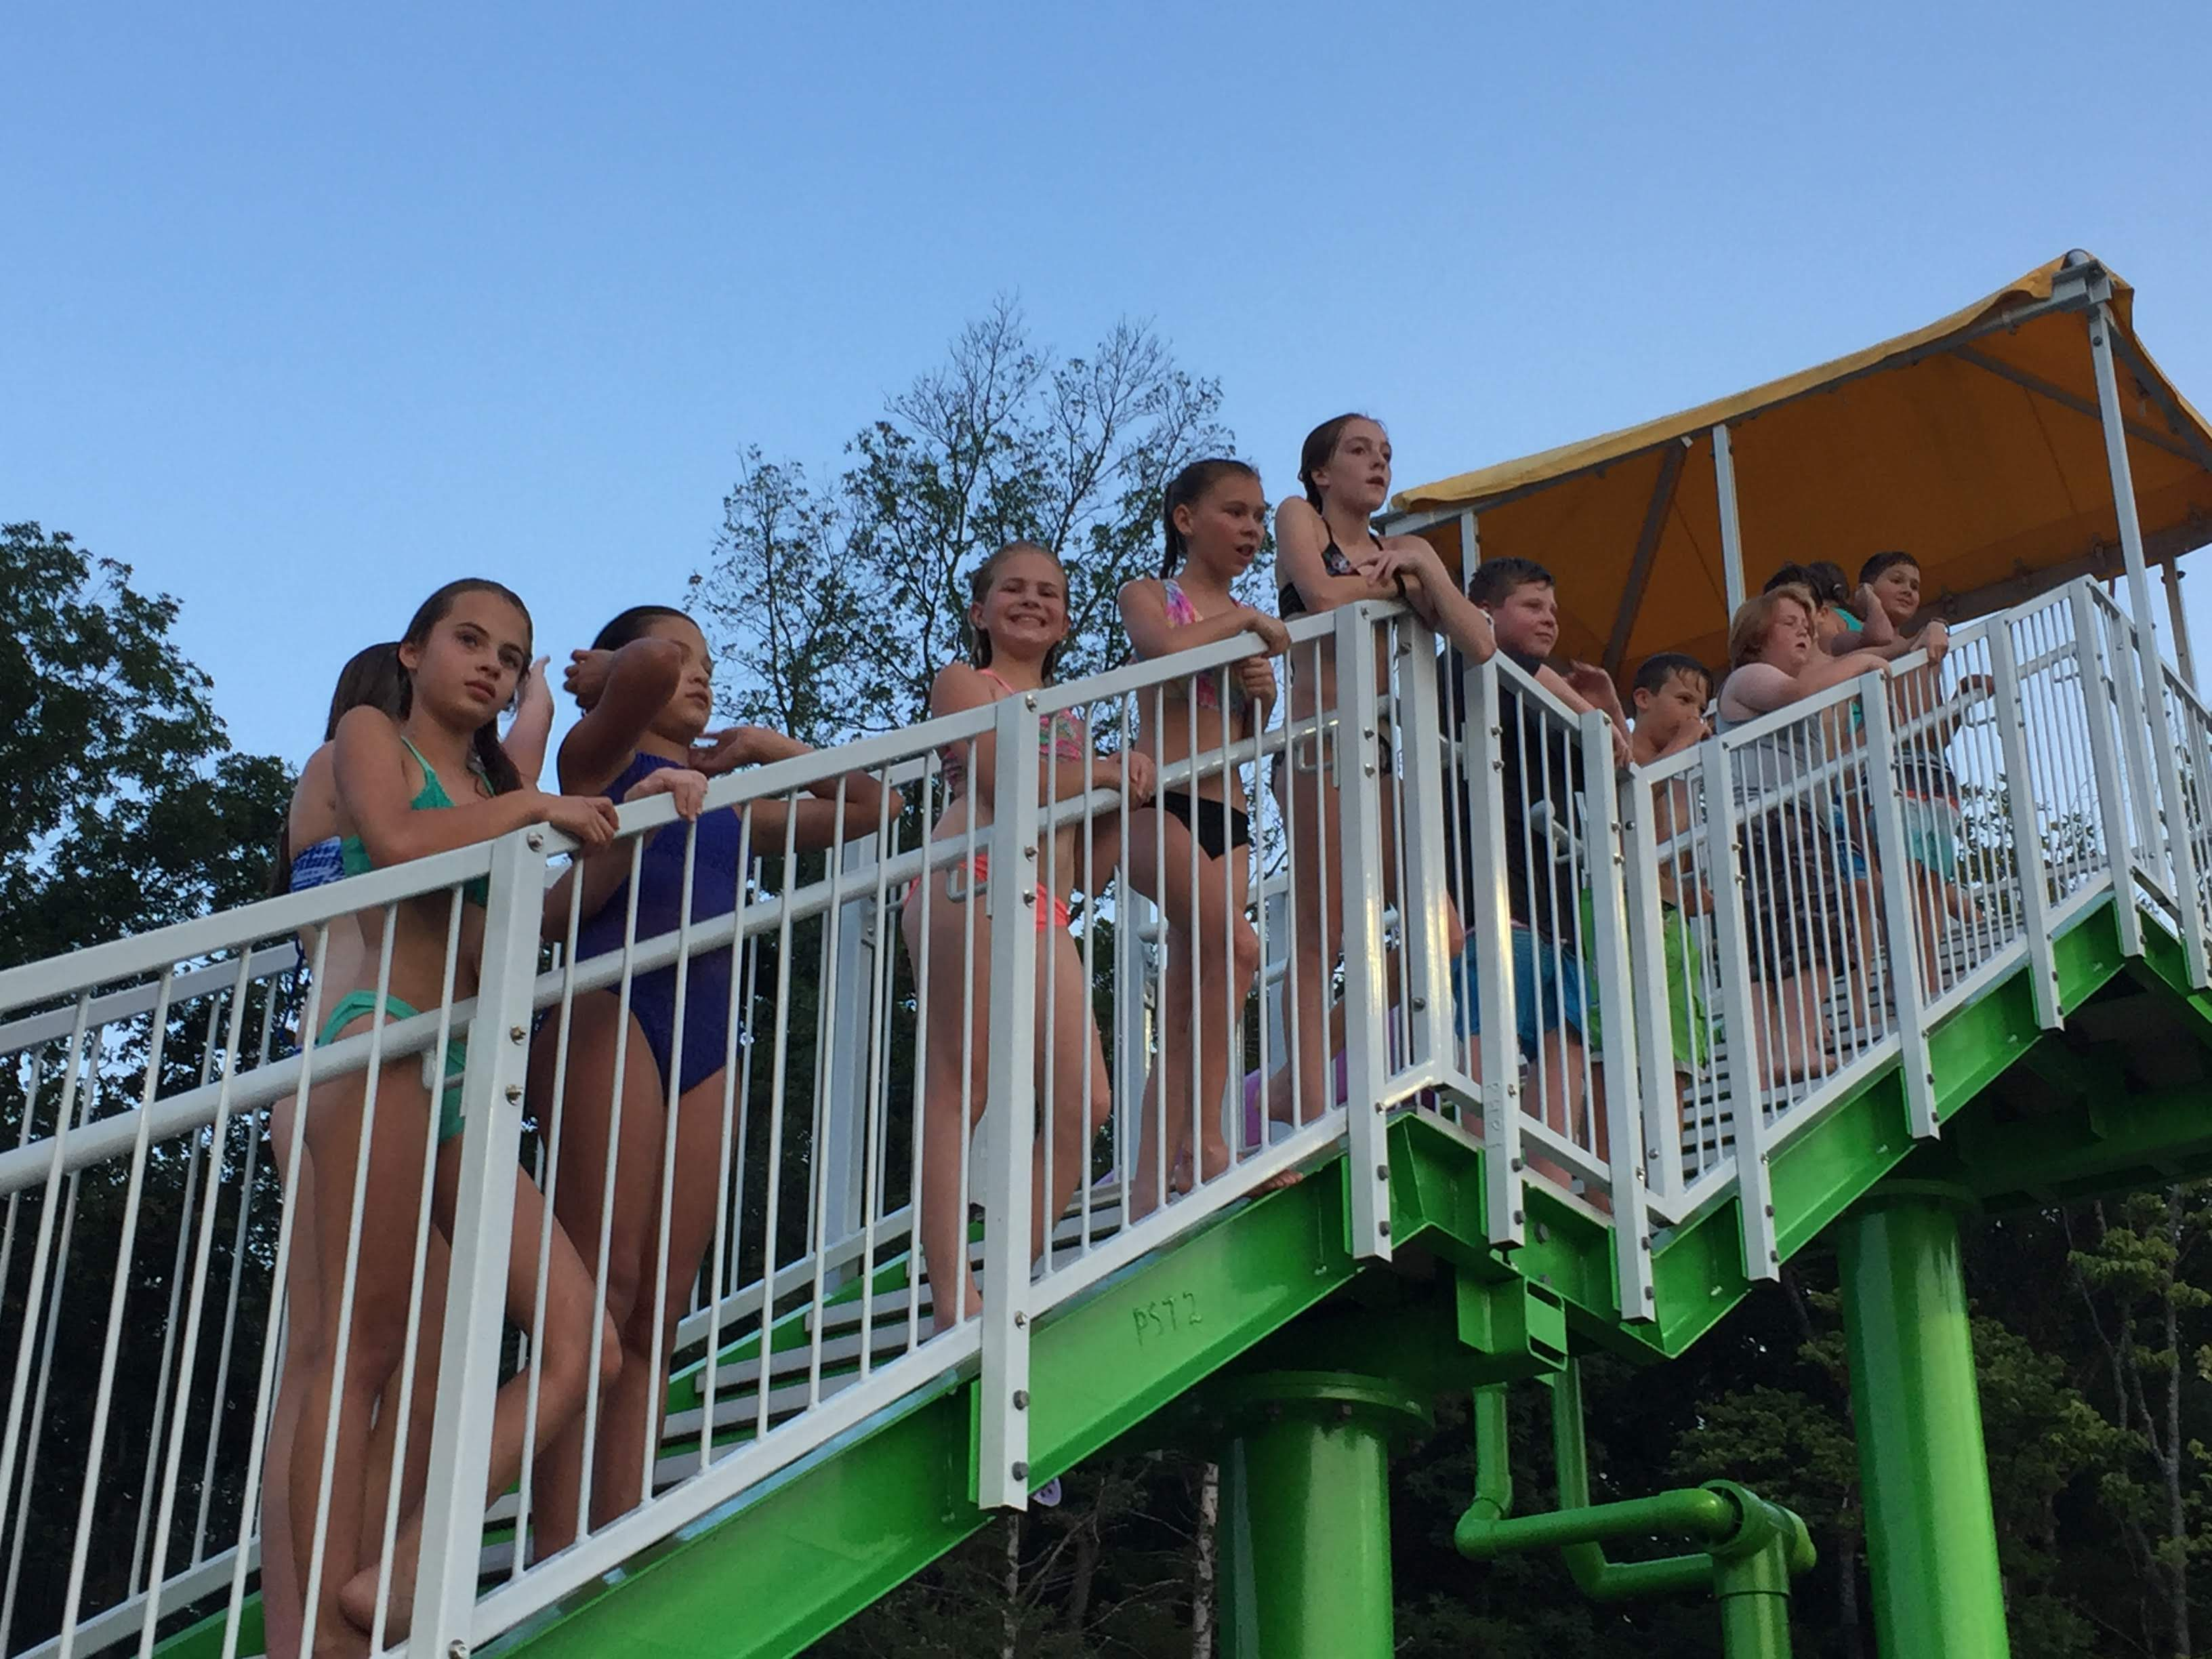 teens waiting in line for a water slide